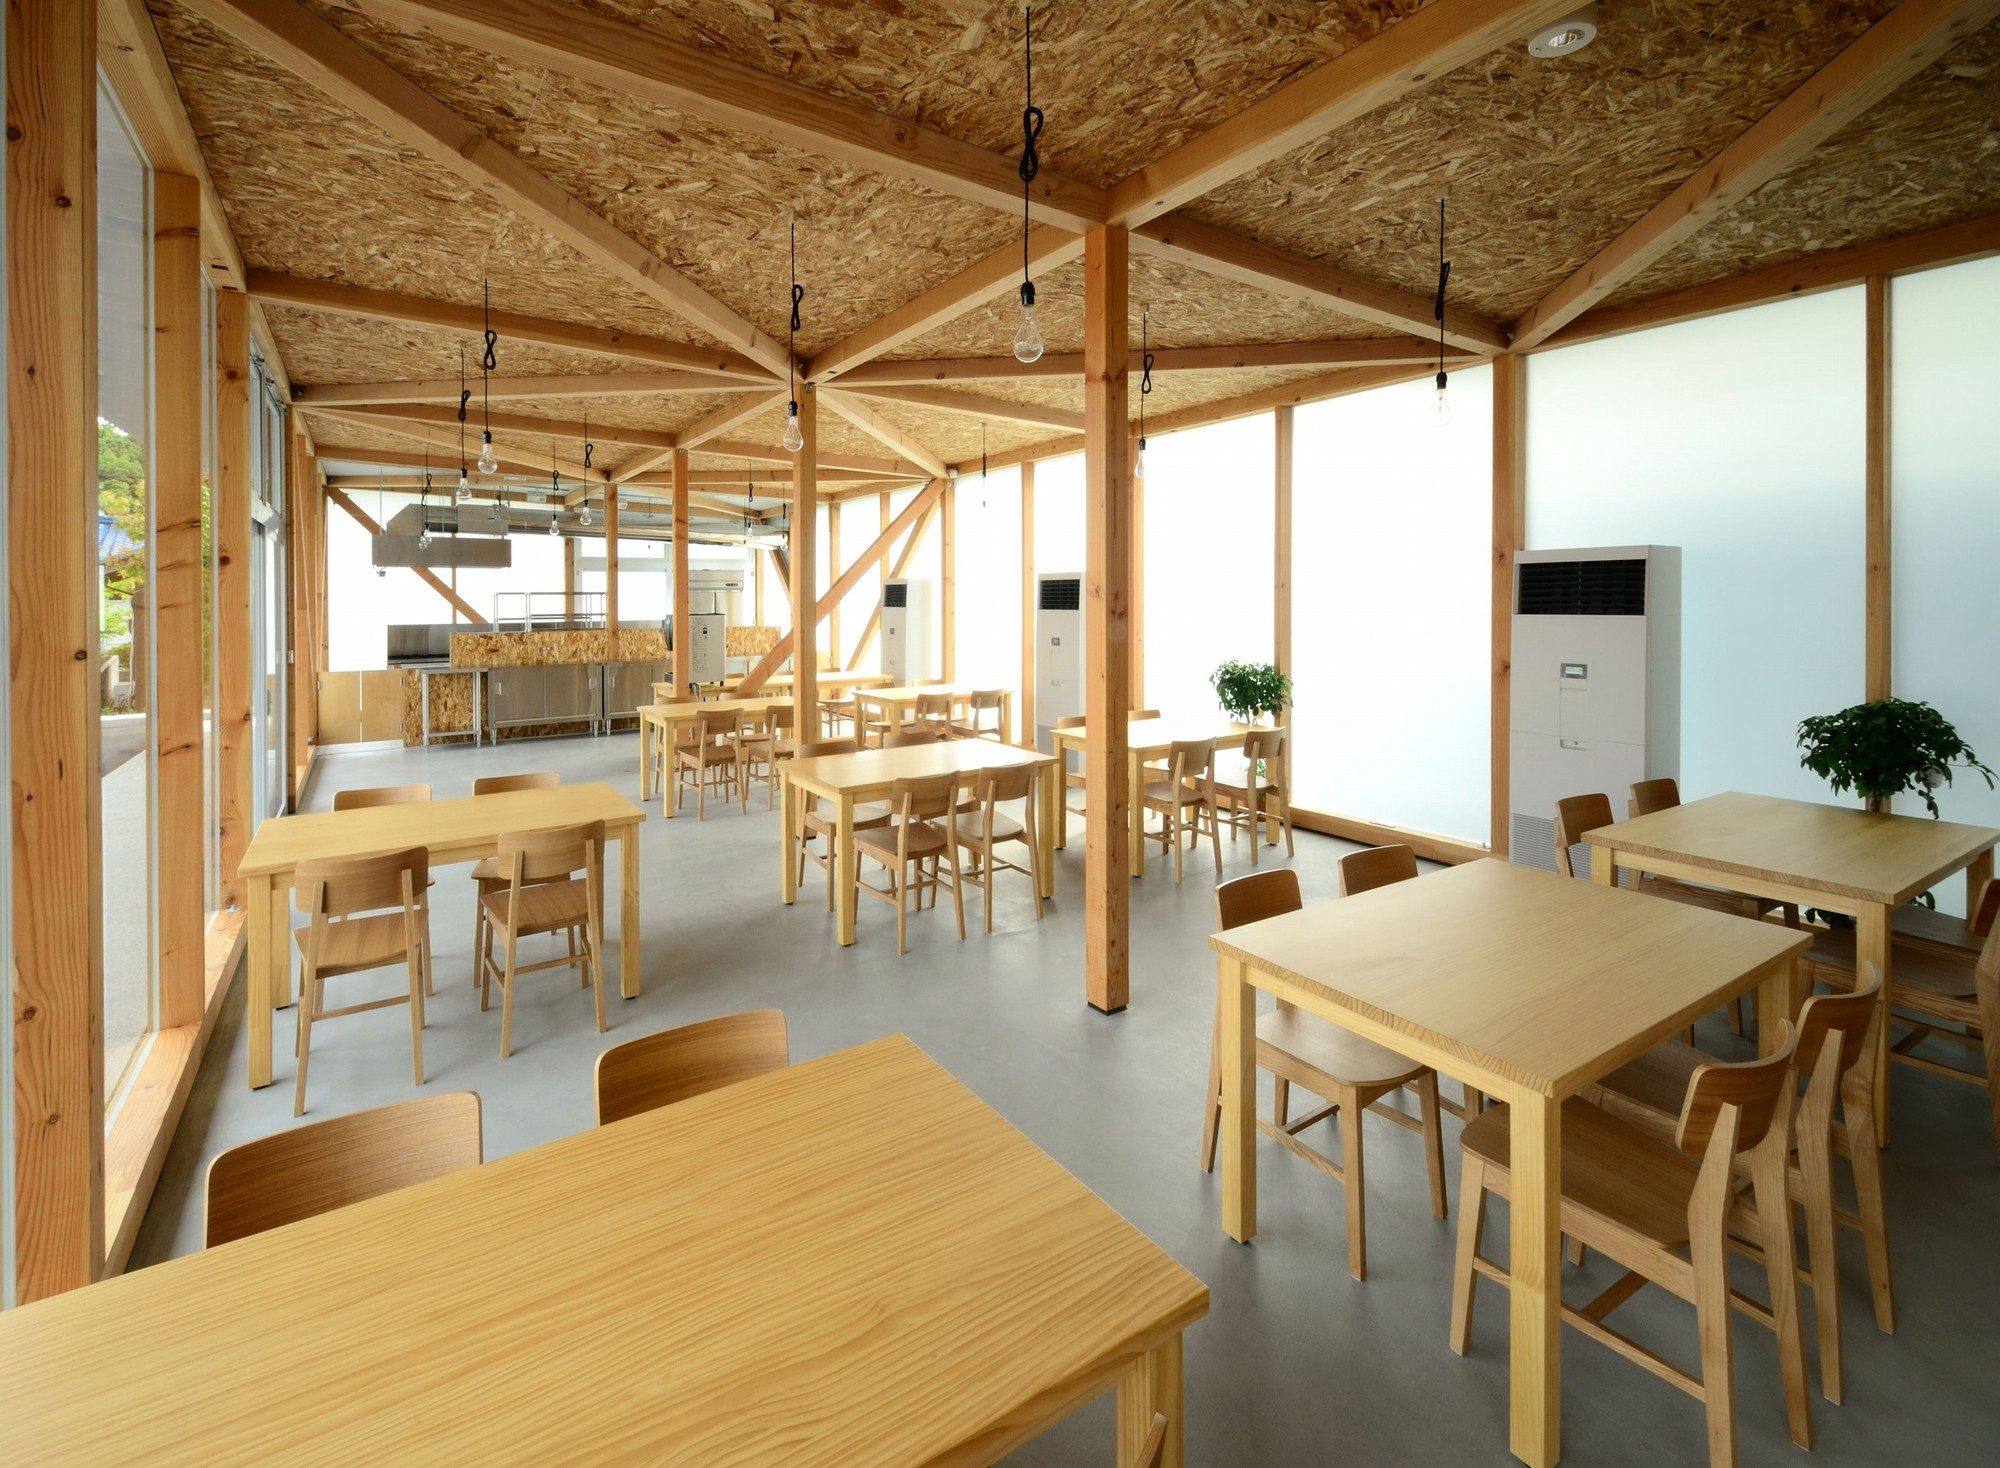 Cafeteria in Ushimado / Niji Architects, © Masafumi Harada/Niji Photo